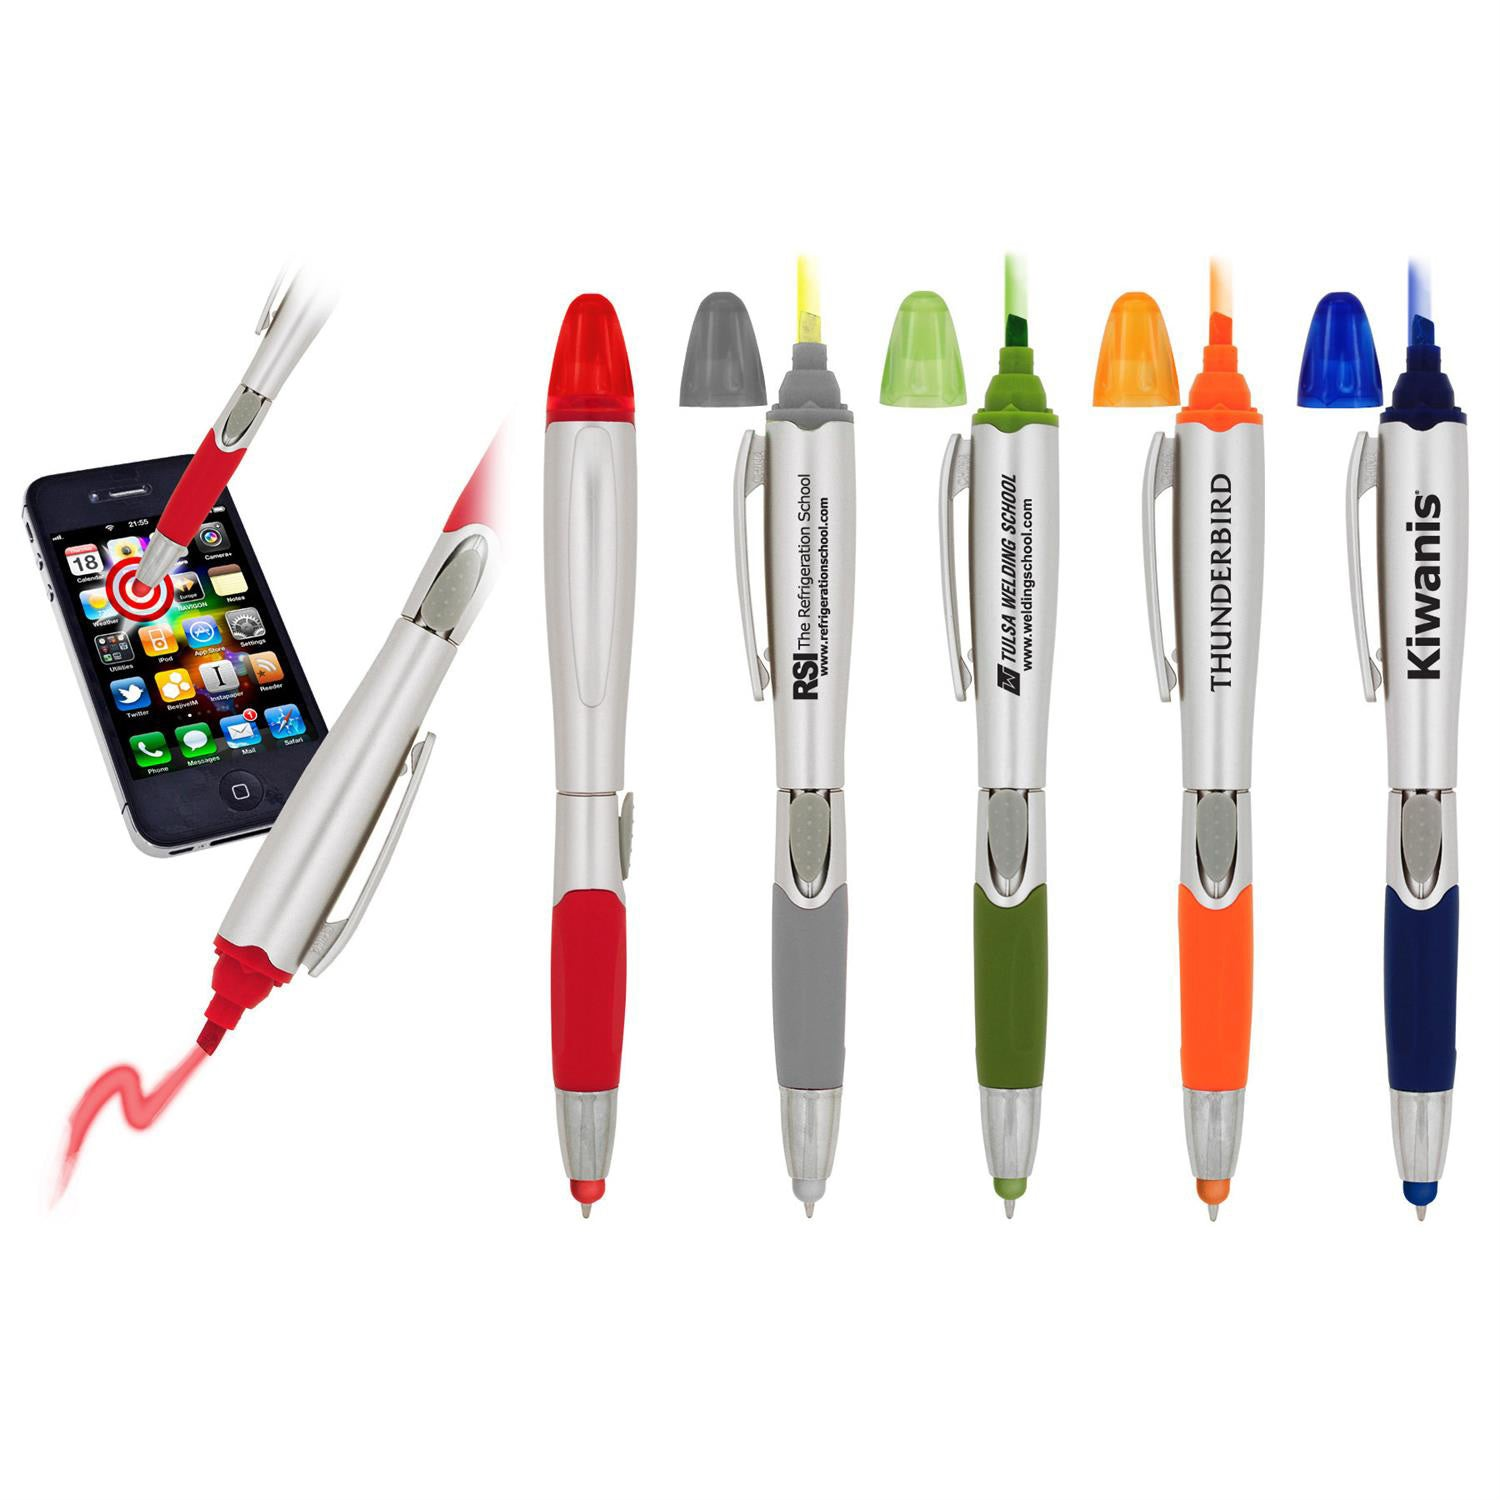 save big on stylus pen and highlighter combos printed with